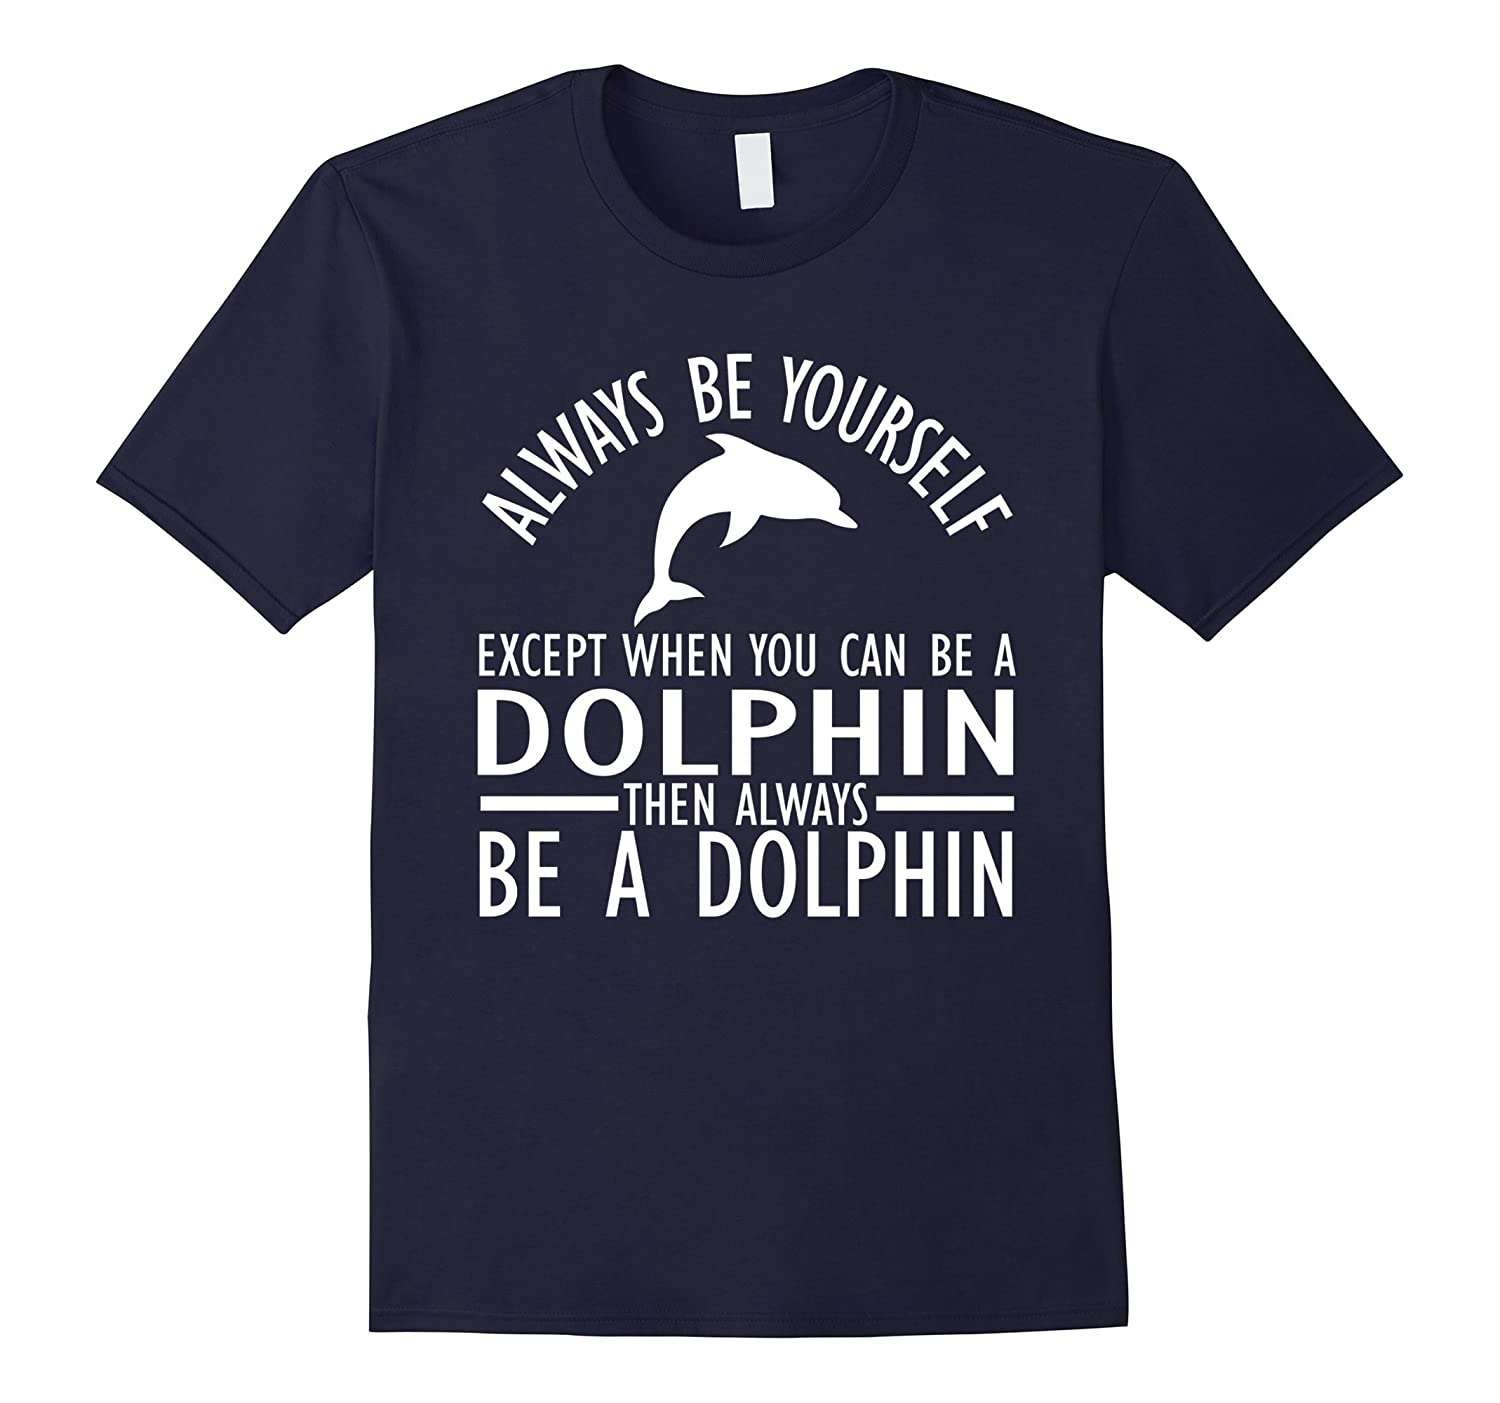 Always Be Yourself Except When You Can Be a Dolphin T-Shirts-TH